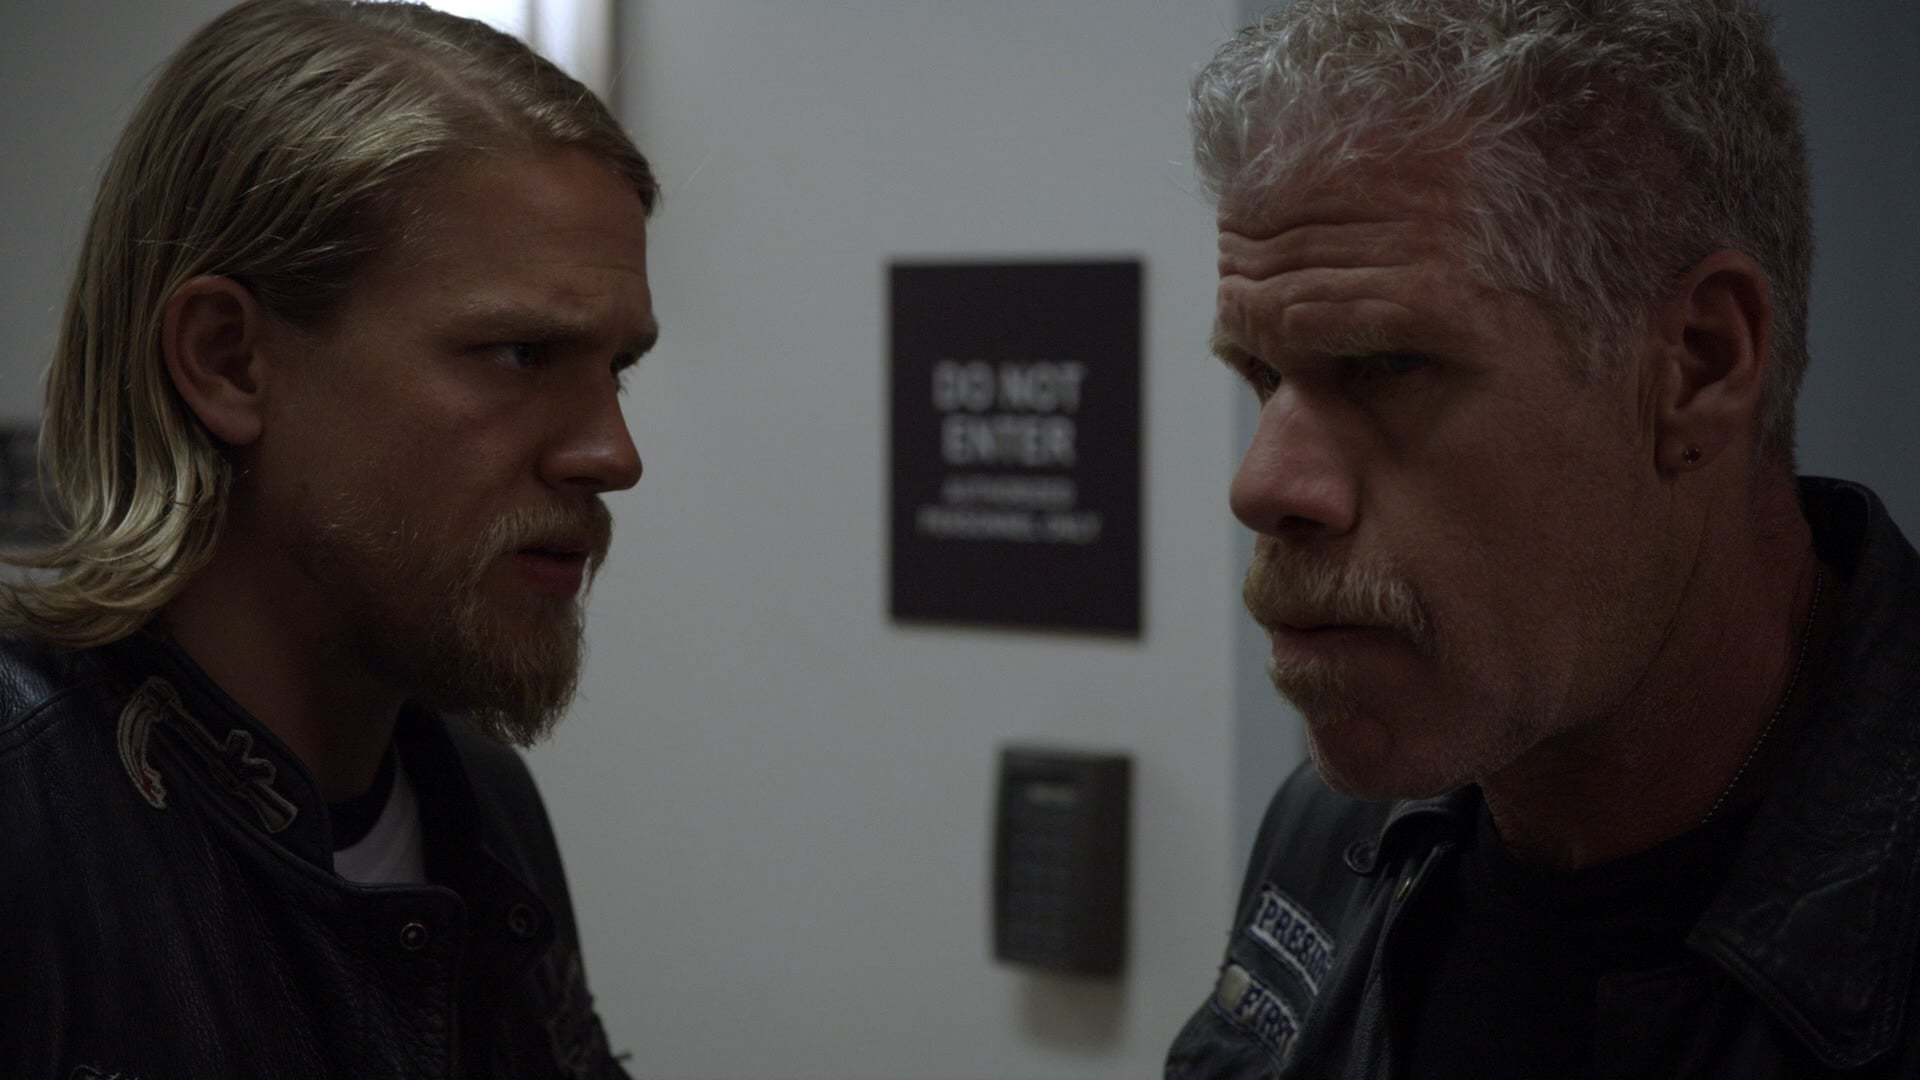 Sons of Anarchy Saison 3 Episode 12 streaming VF HD 2020